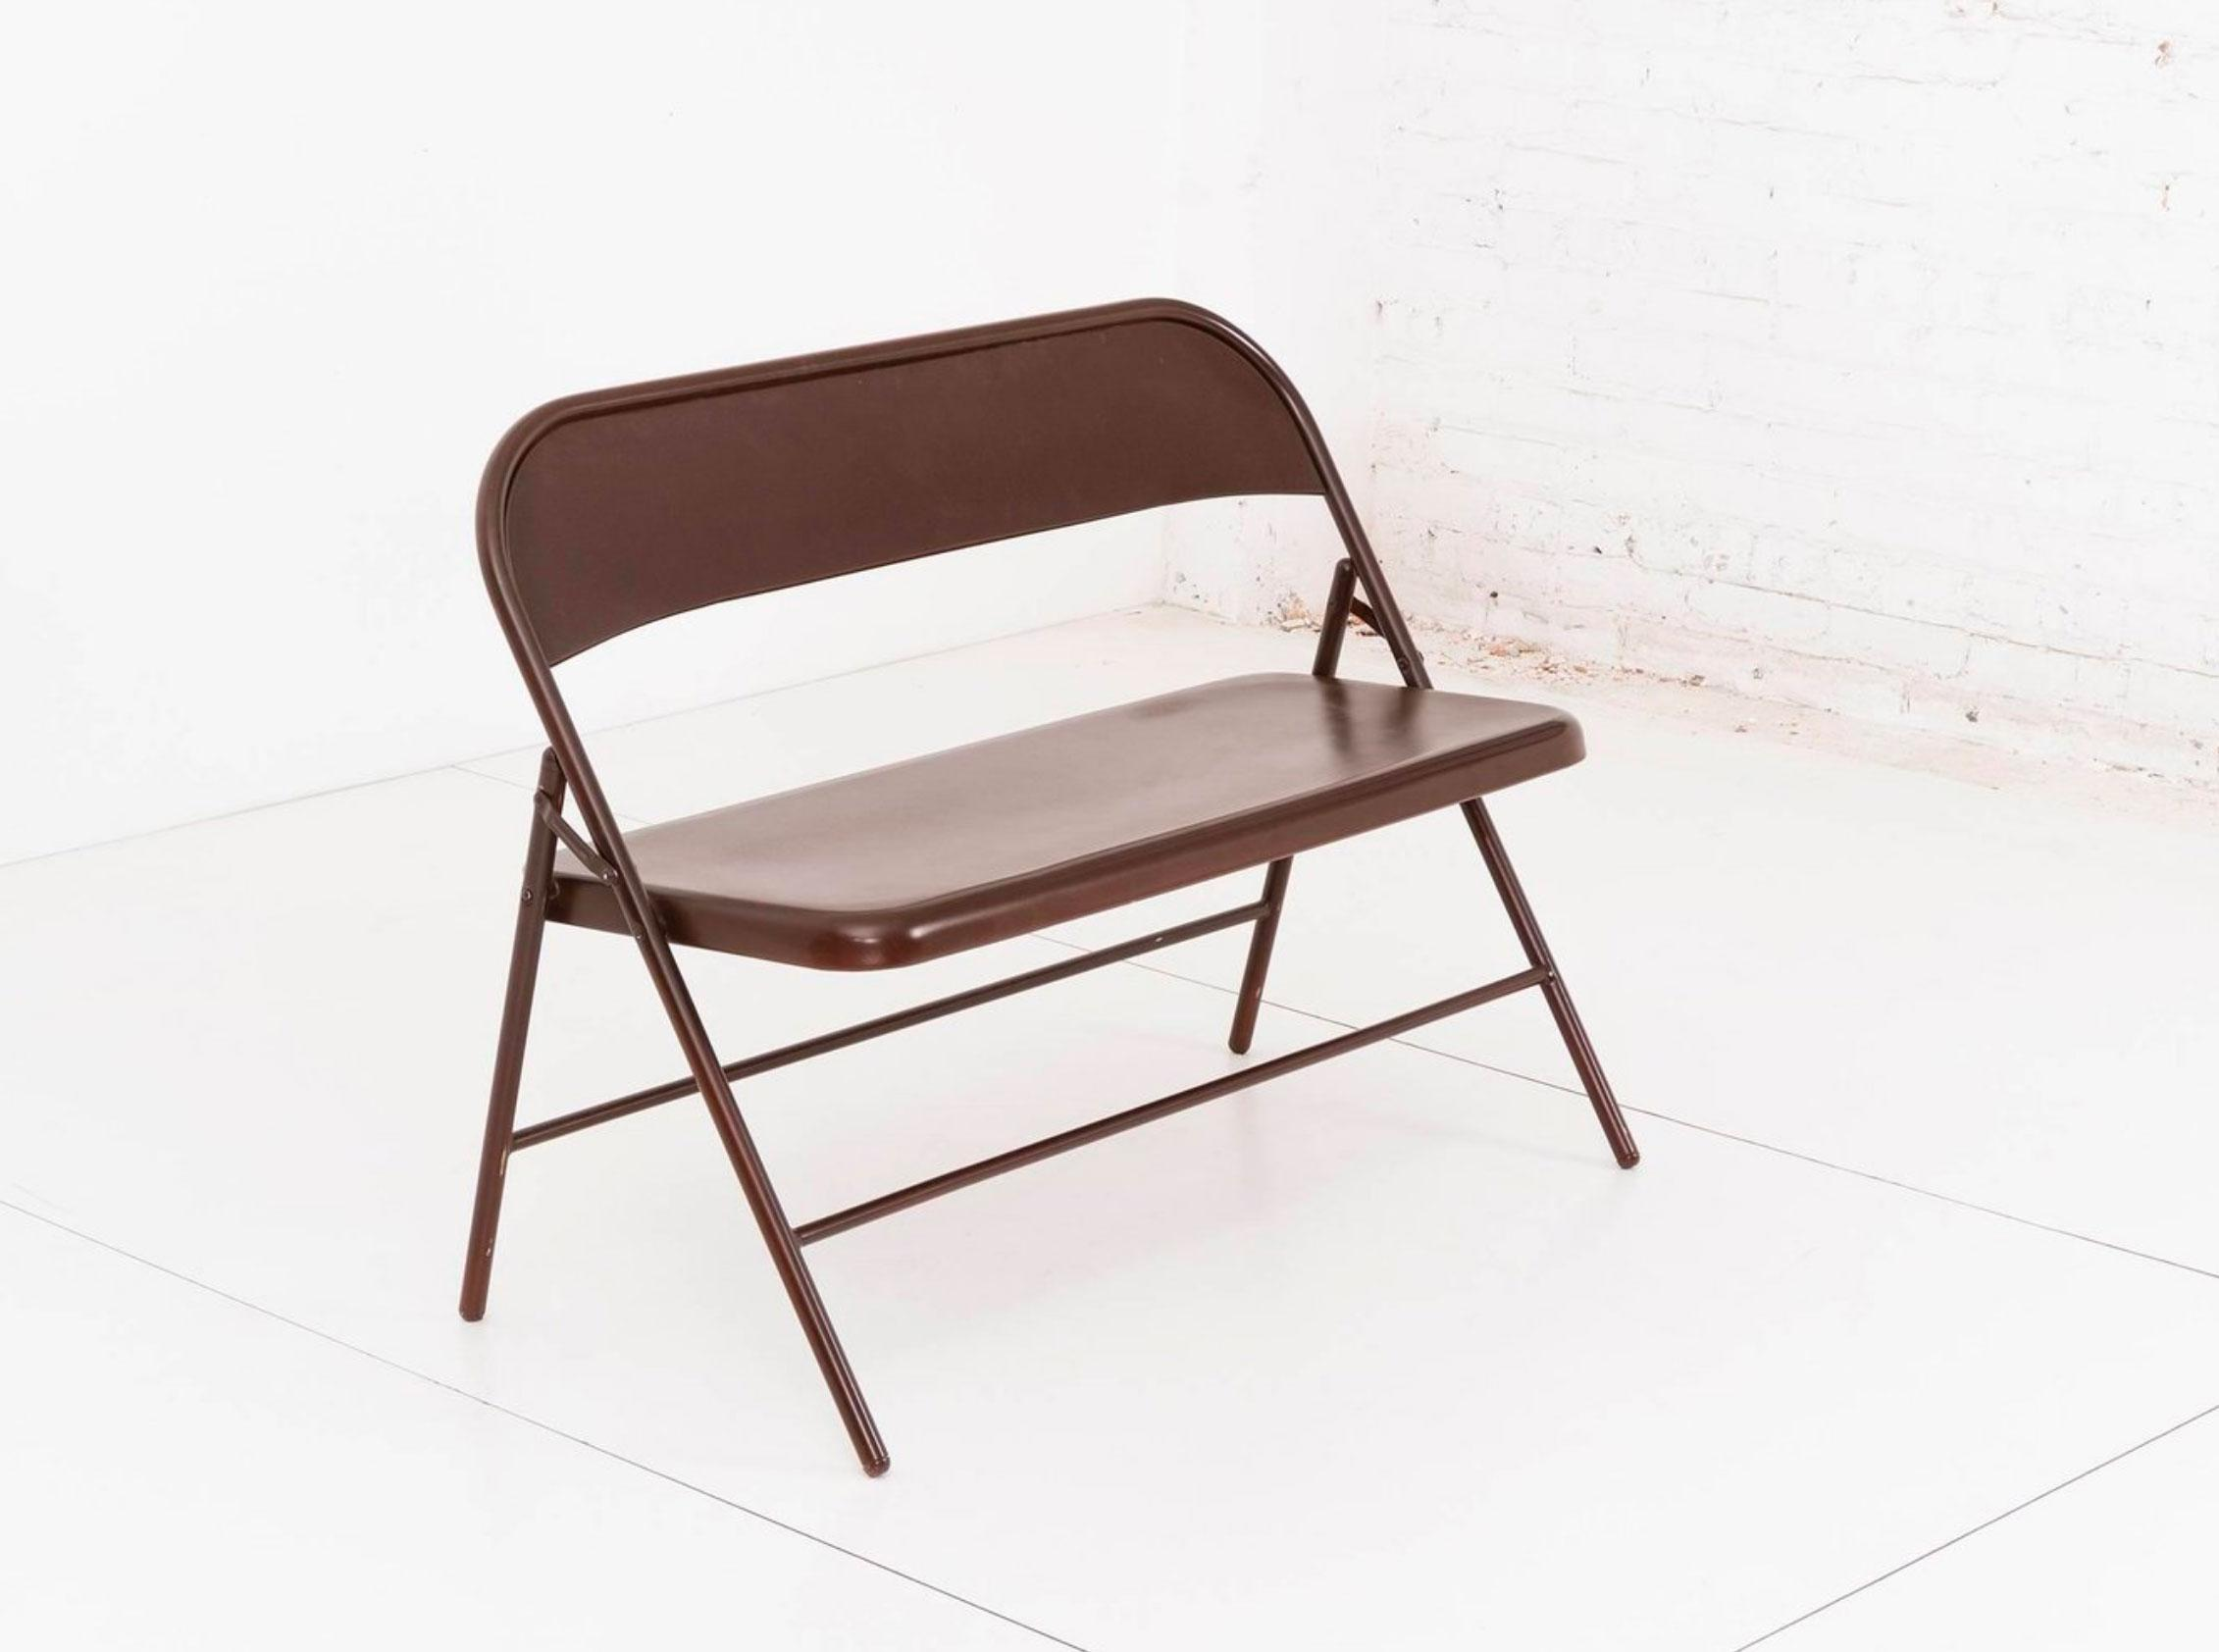 Charmant Robert James Leonetti Doublewide Chair For Sale   Image 4 Of 9